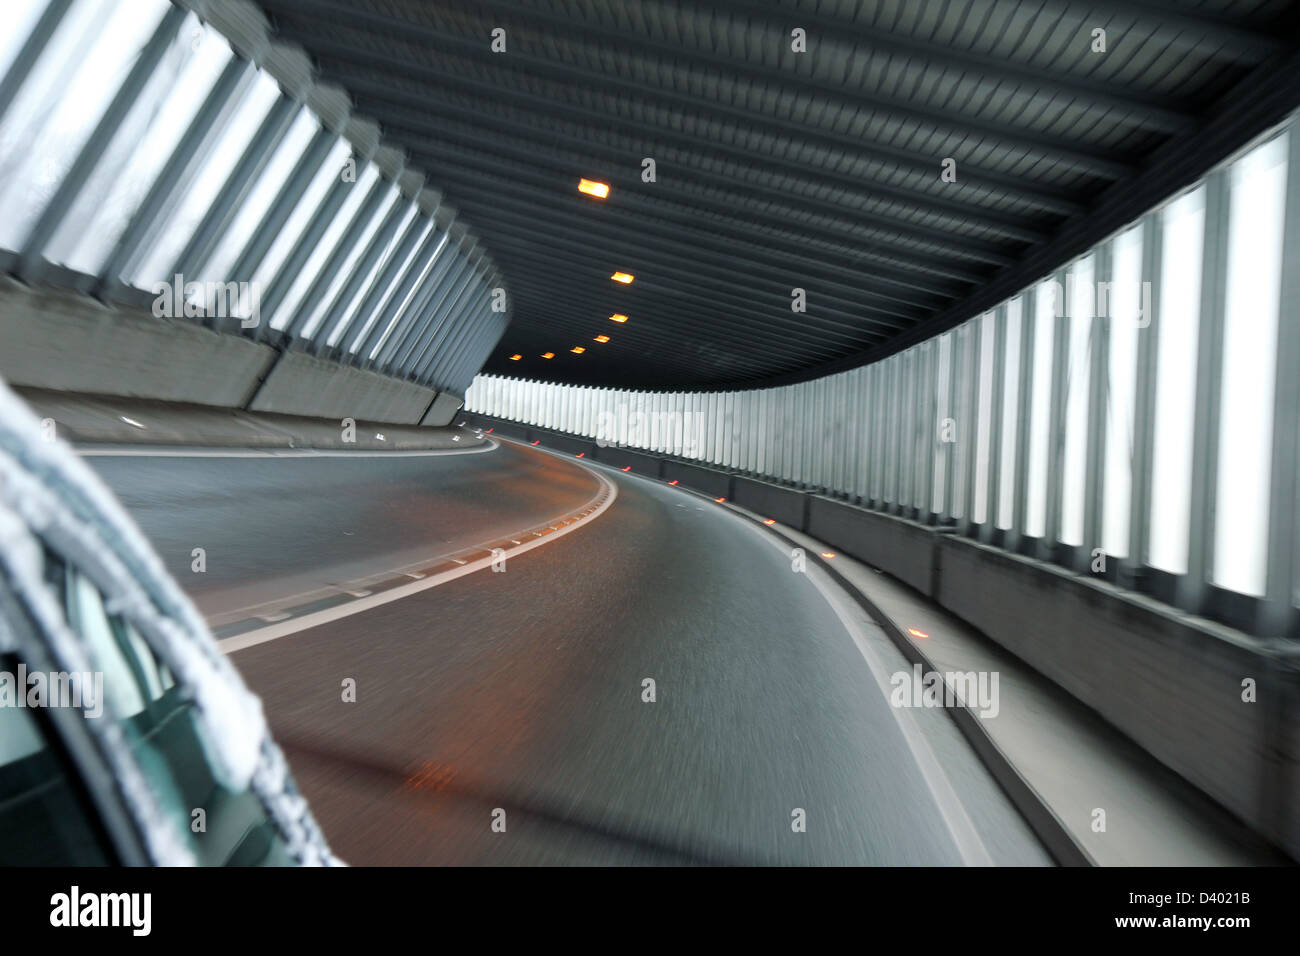 detail of car tunnel illuminate with day light - Stock Image